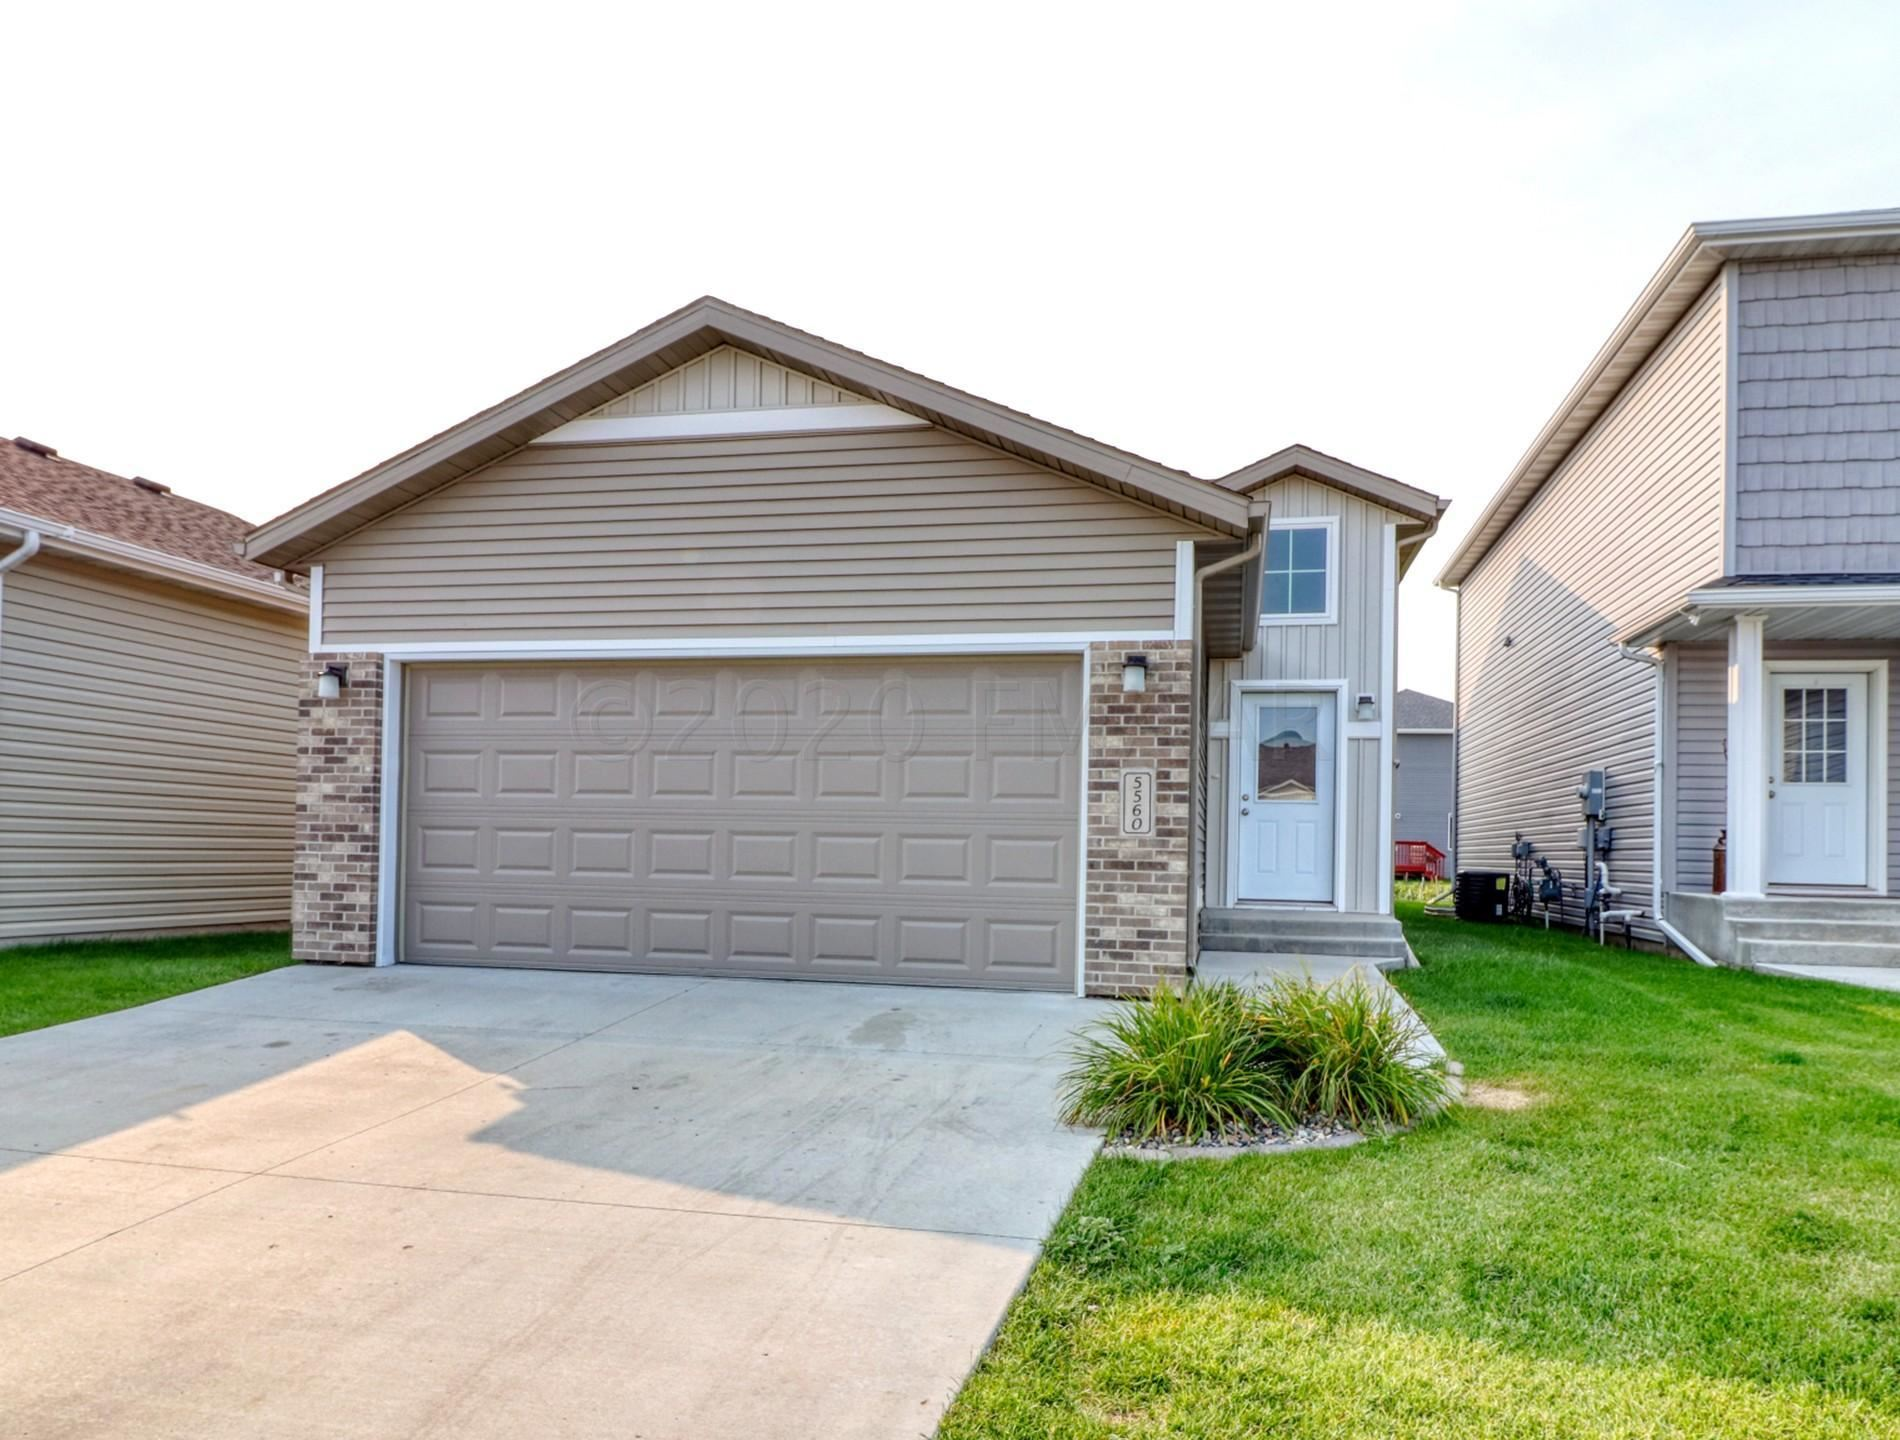 5560 JUSTICE S Drive, Fargo, ND 58104 - #: 20-5322